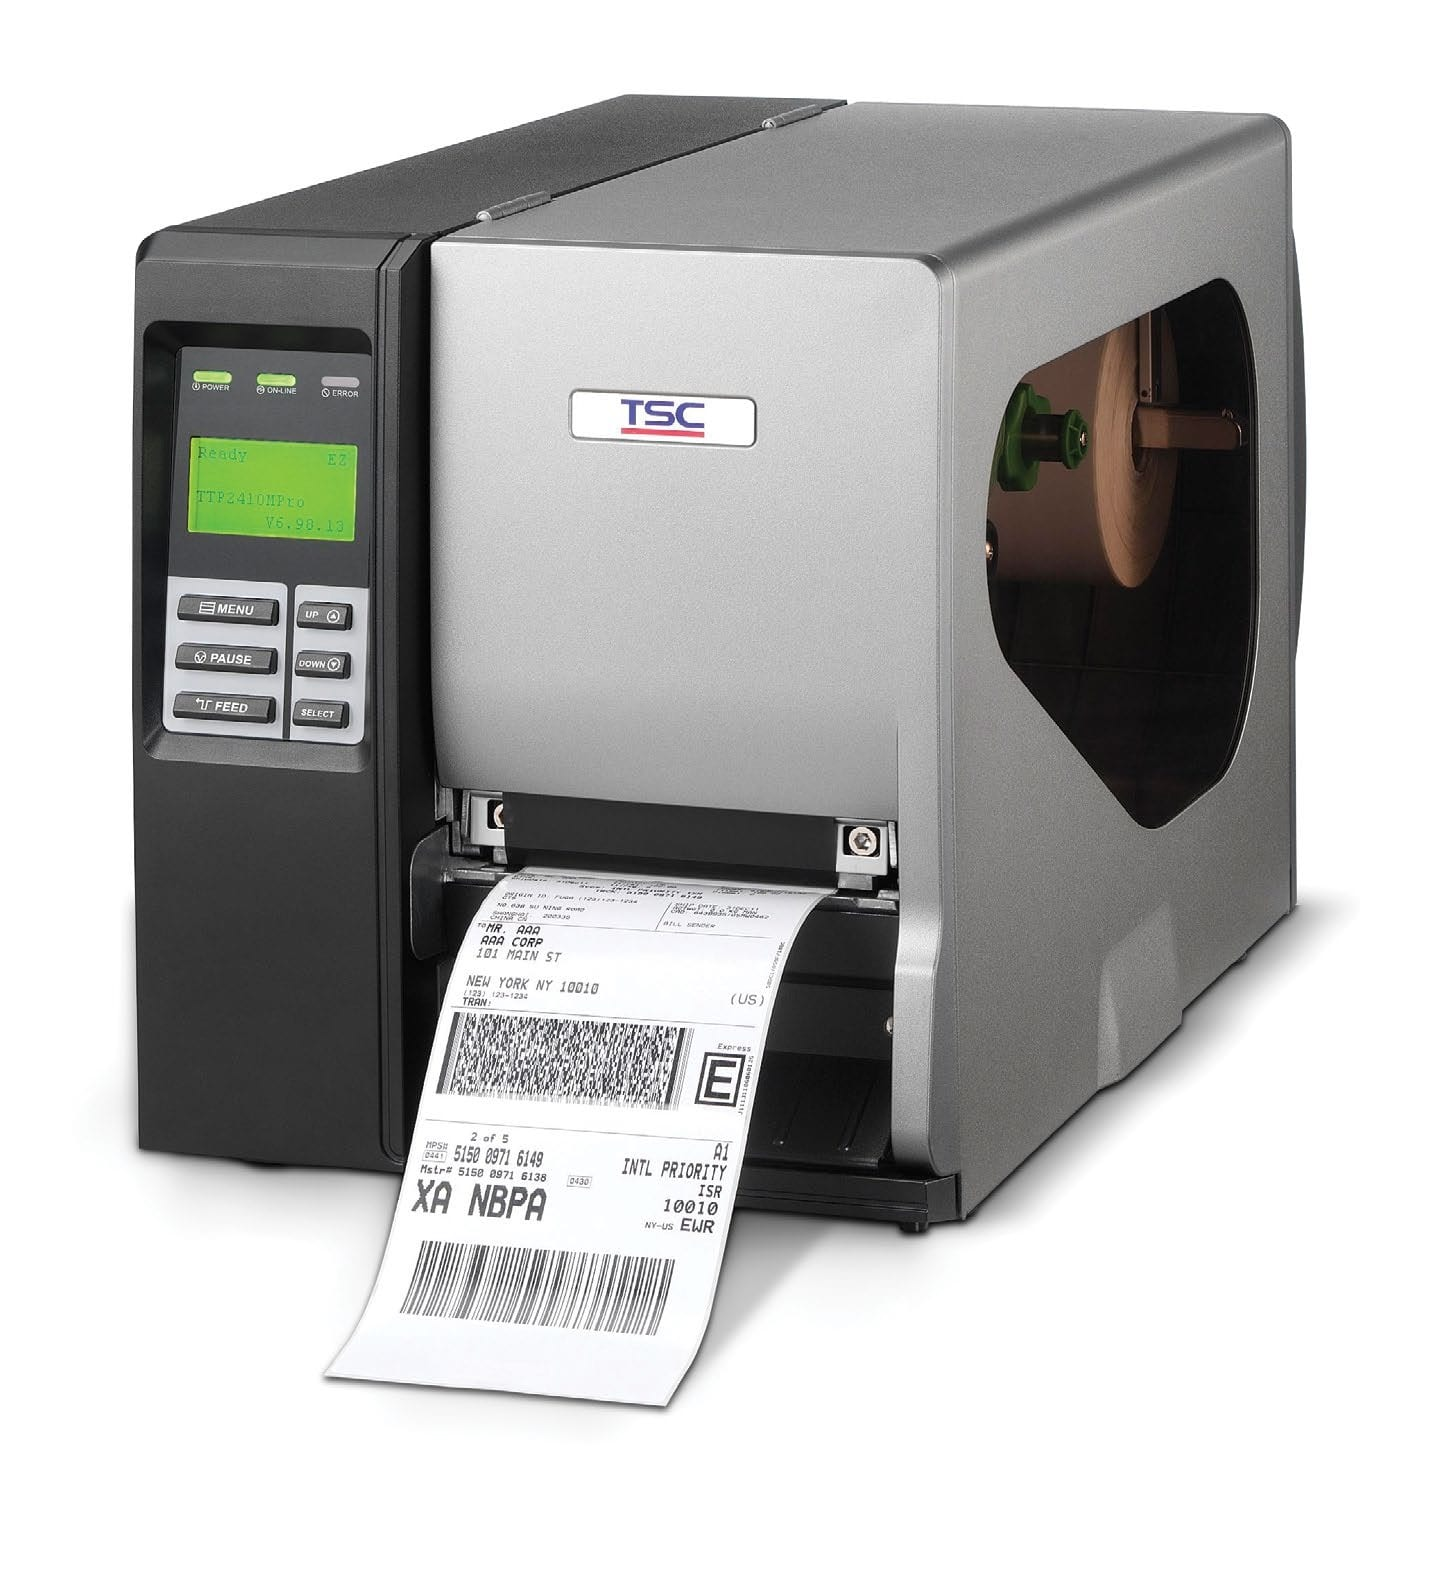 TSC TTP246M Plus Barcode Printer